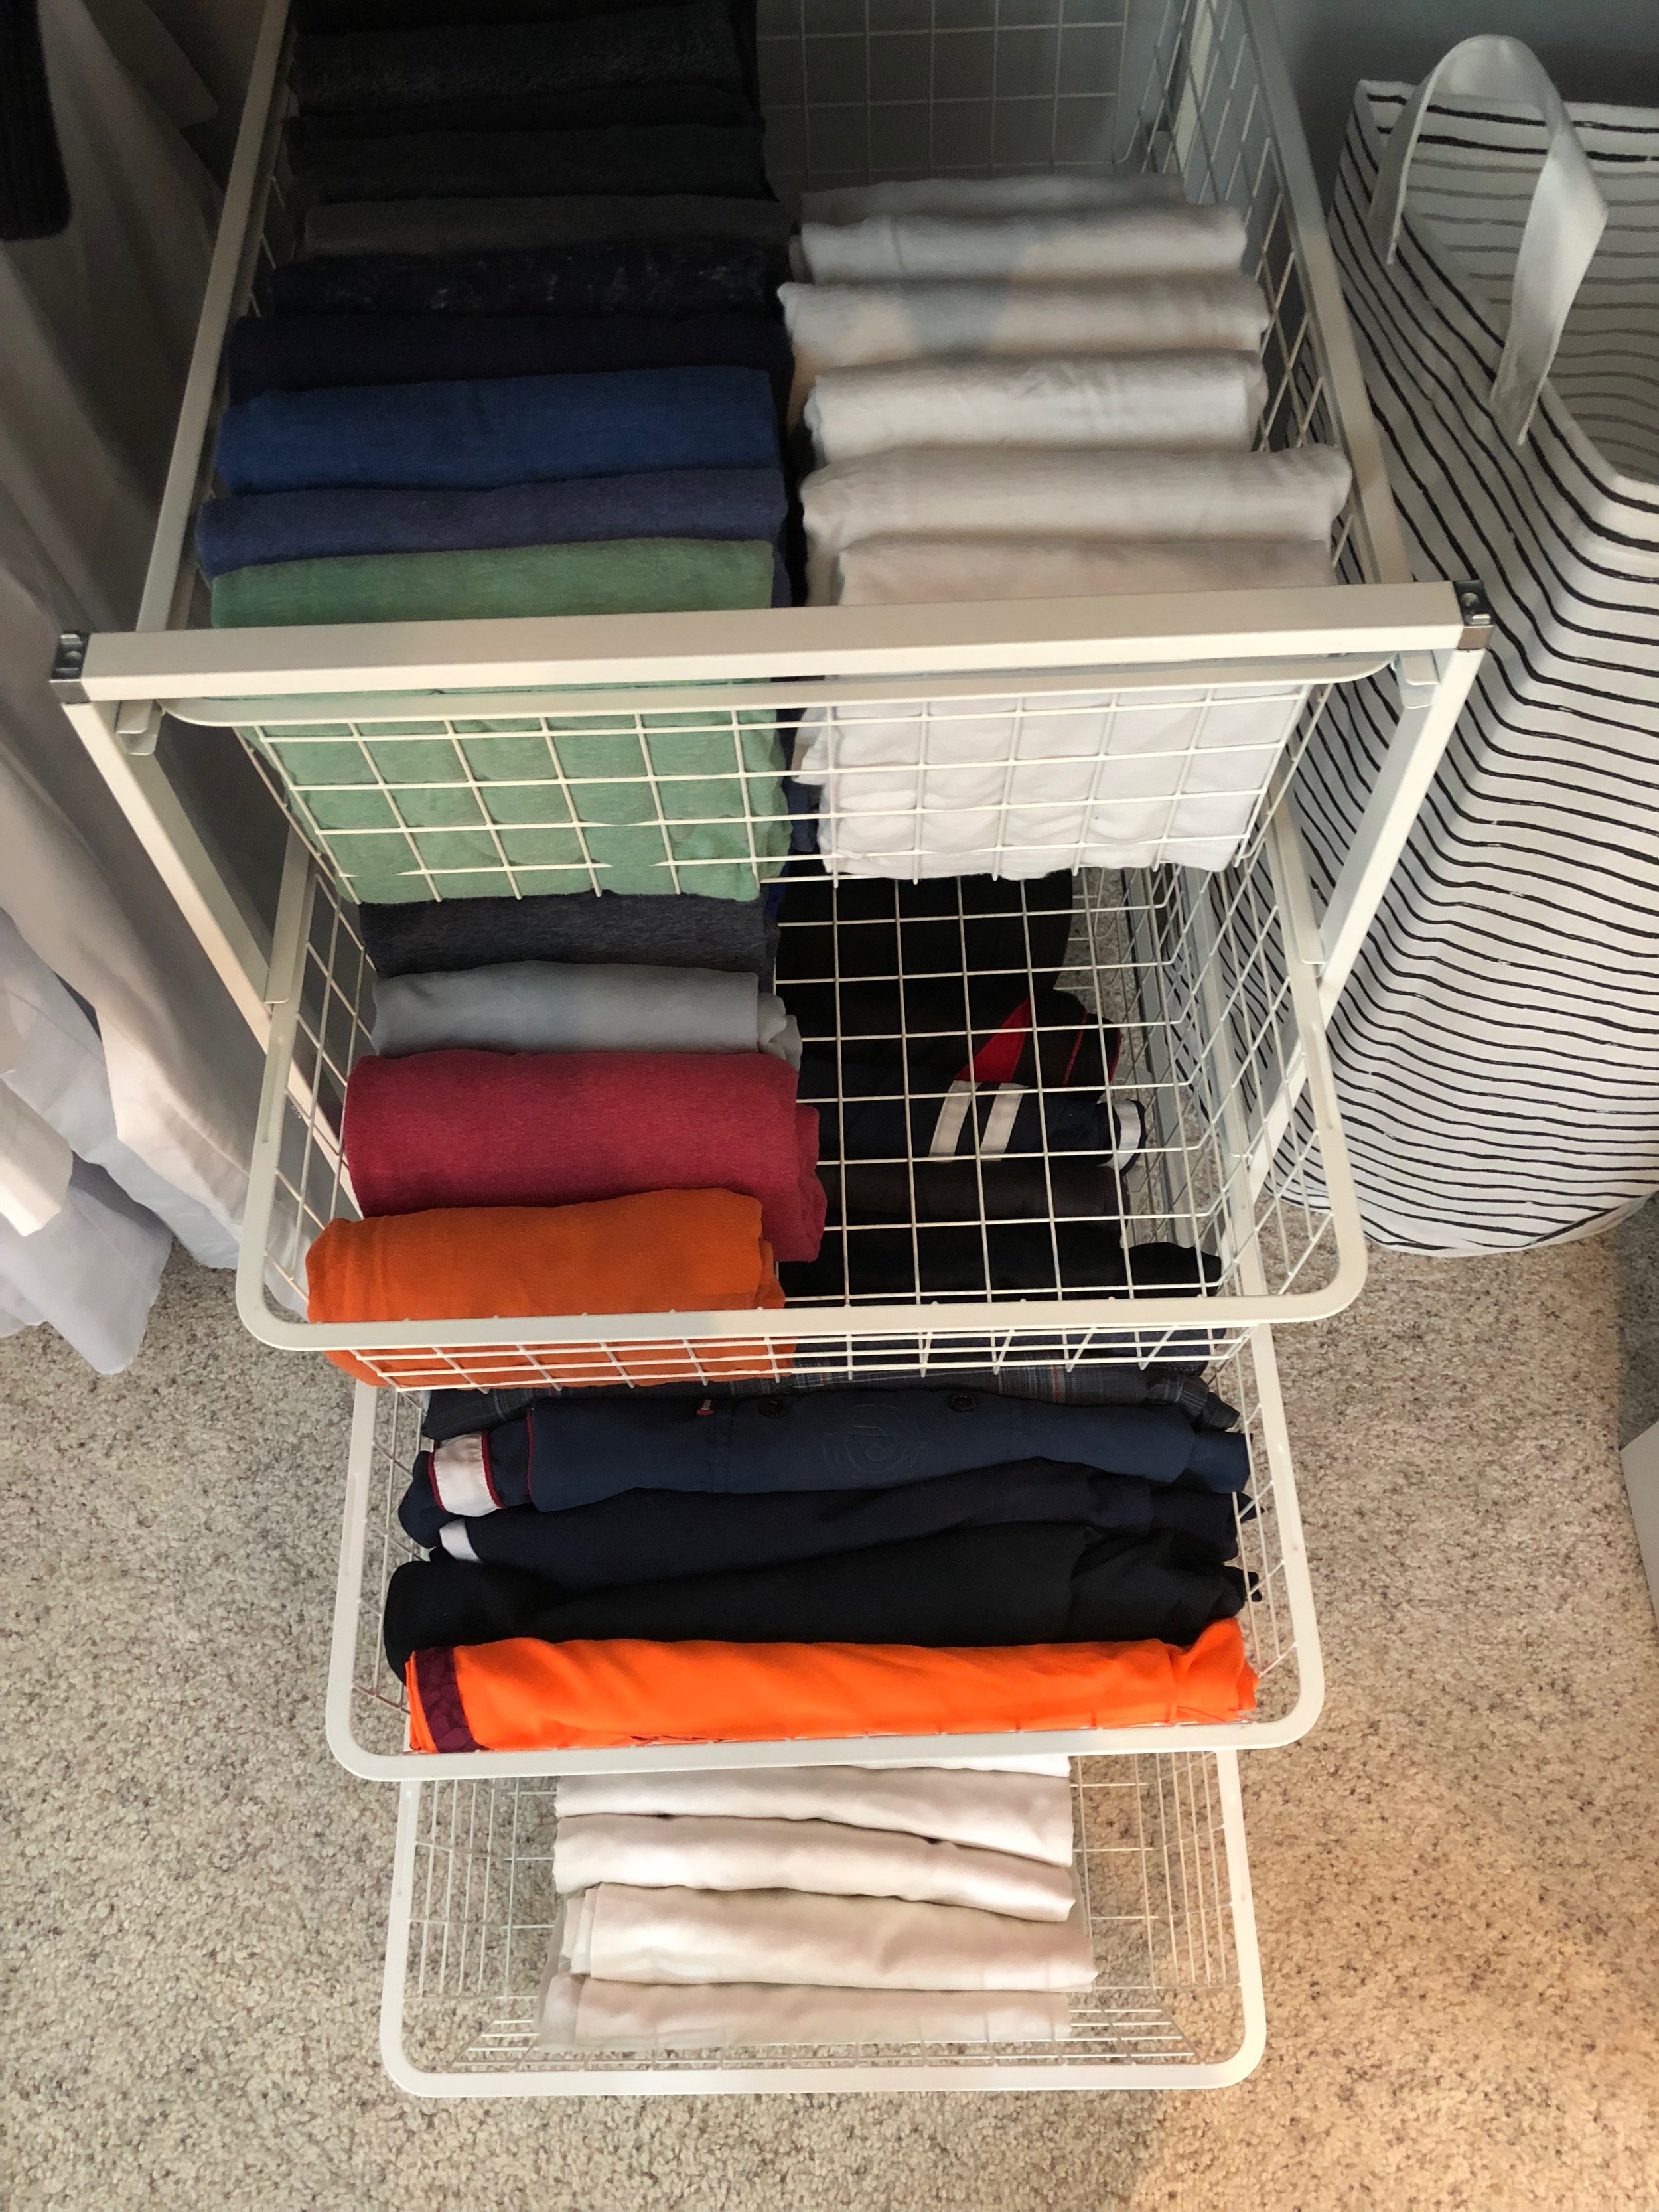 AFTER - Folding clothes can save lots of space.